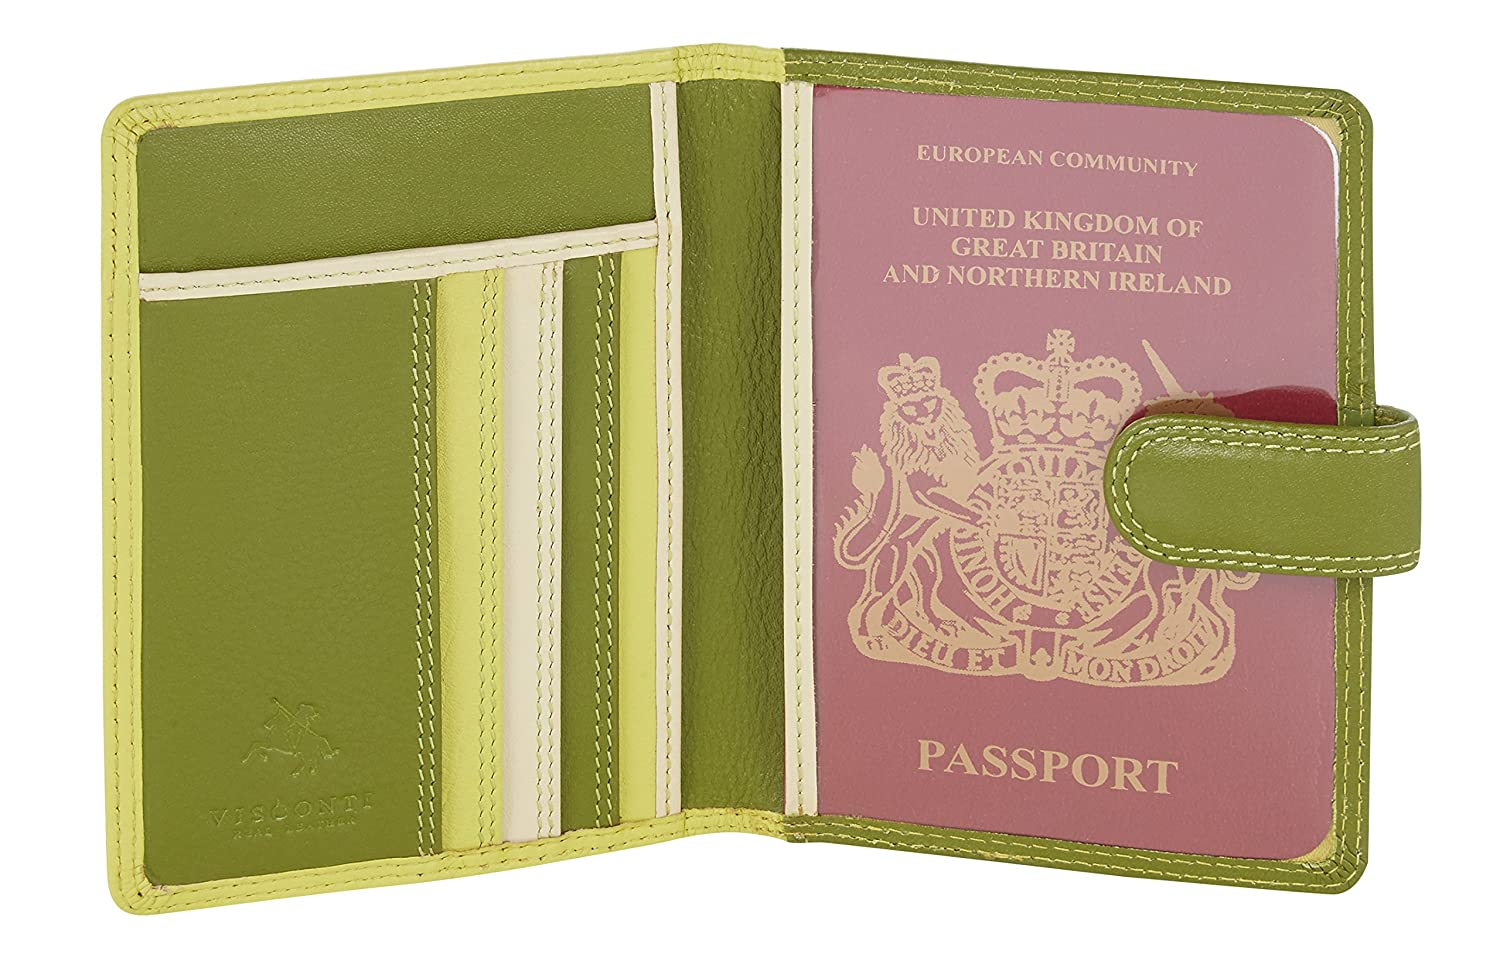 Visconti Leder Damen Passhülle 'Rainbow' Multicolor / Mehrfarbig Passport Cover Case(RB75)